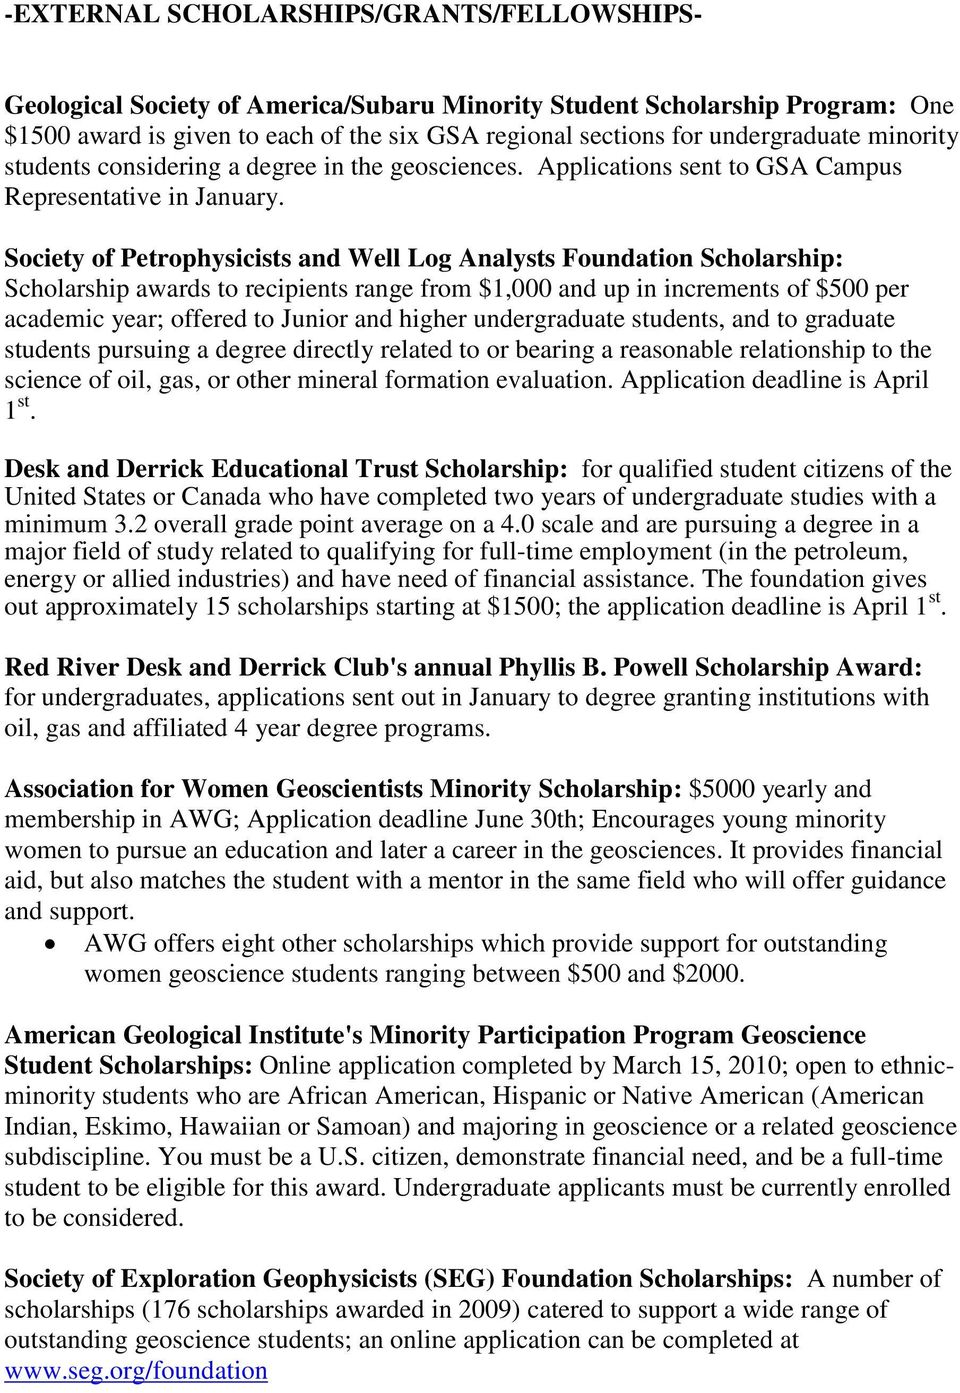 Society Of Petrophysicists And Well Log Analysts Foundation Scholarship Awards To Recipients Range From